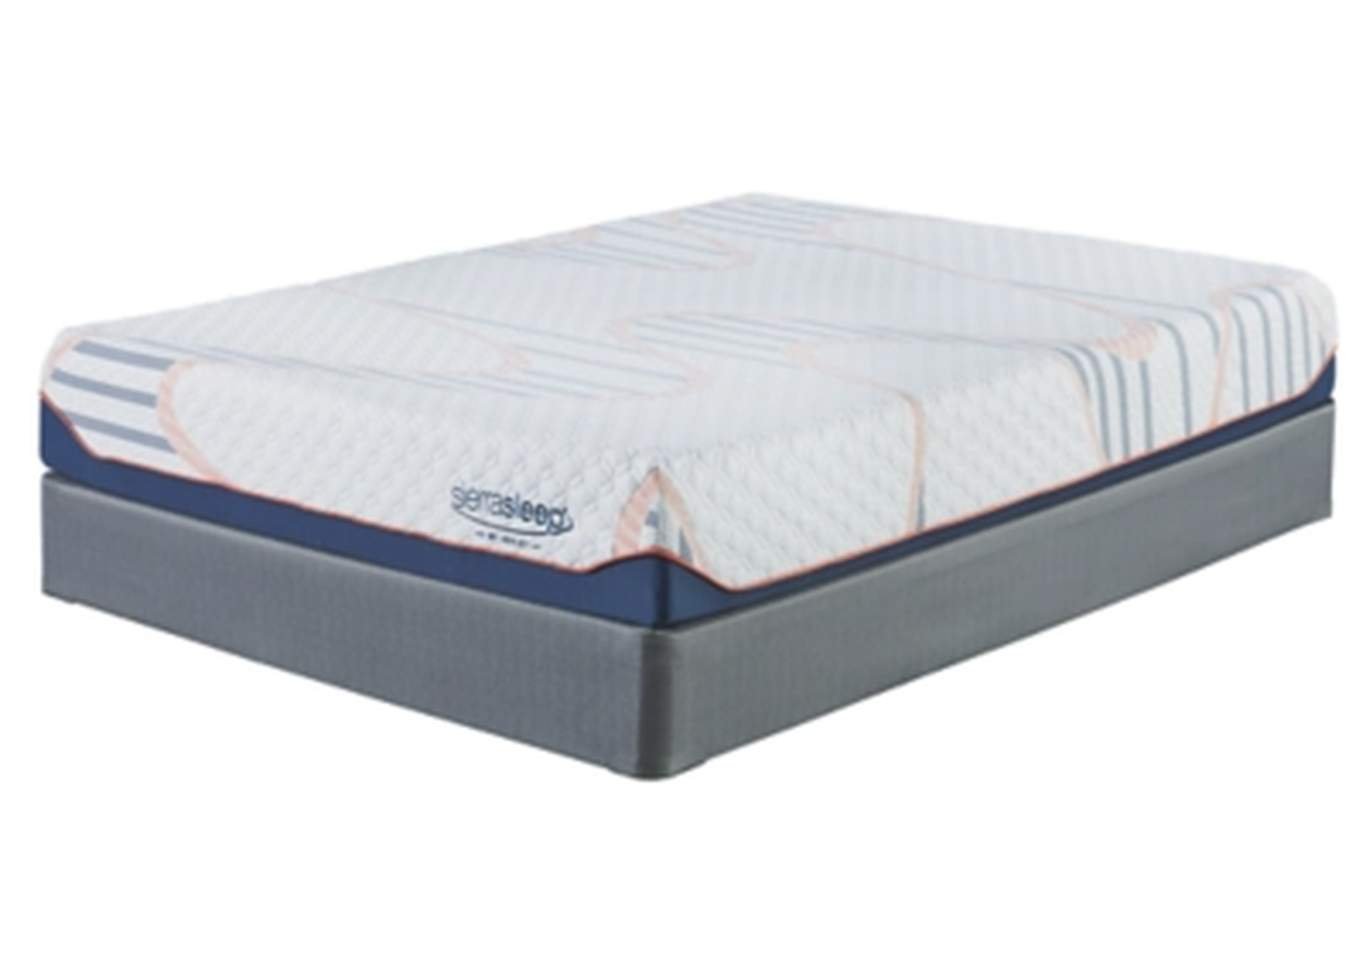 10 Inch MyGel King Mattress,Sierra Sleep by Ashley